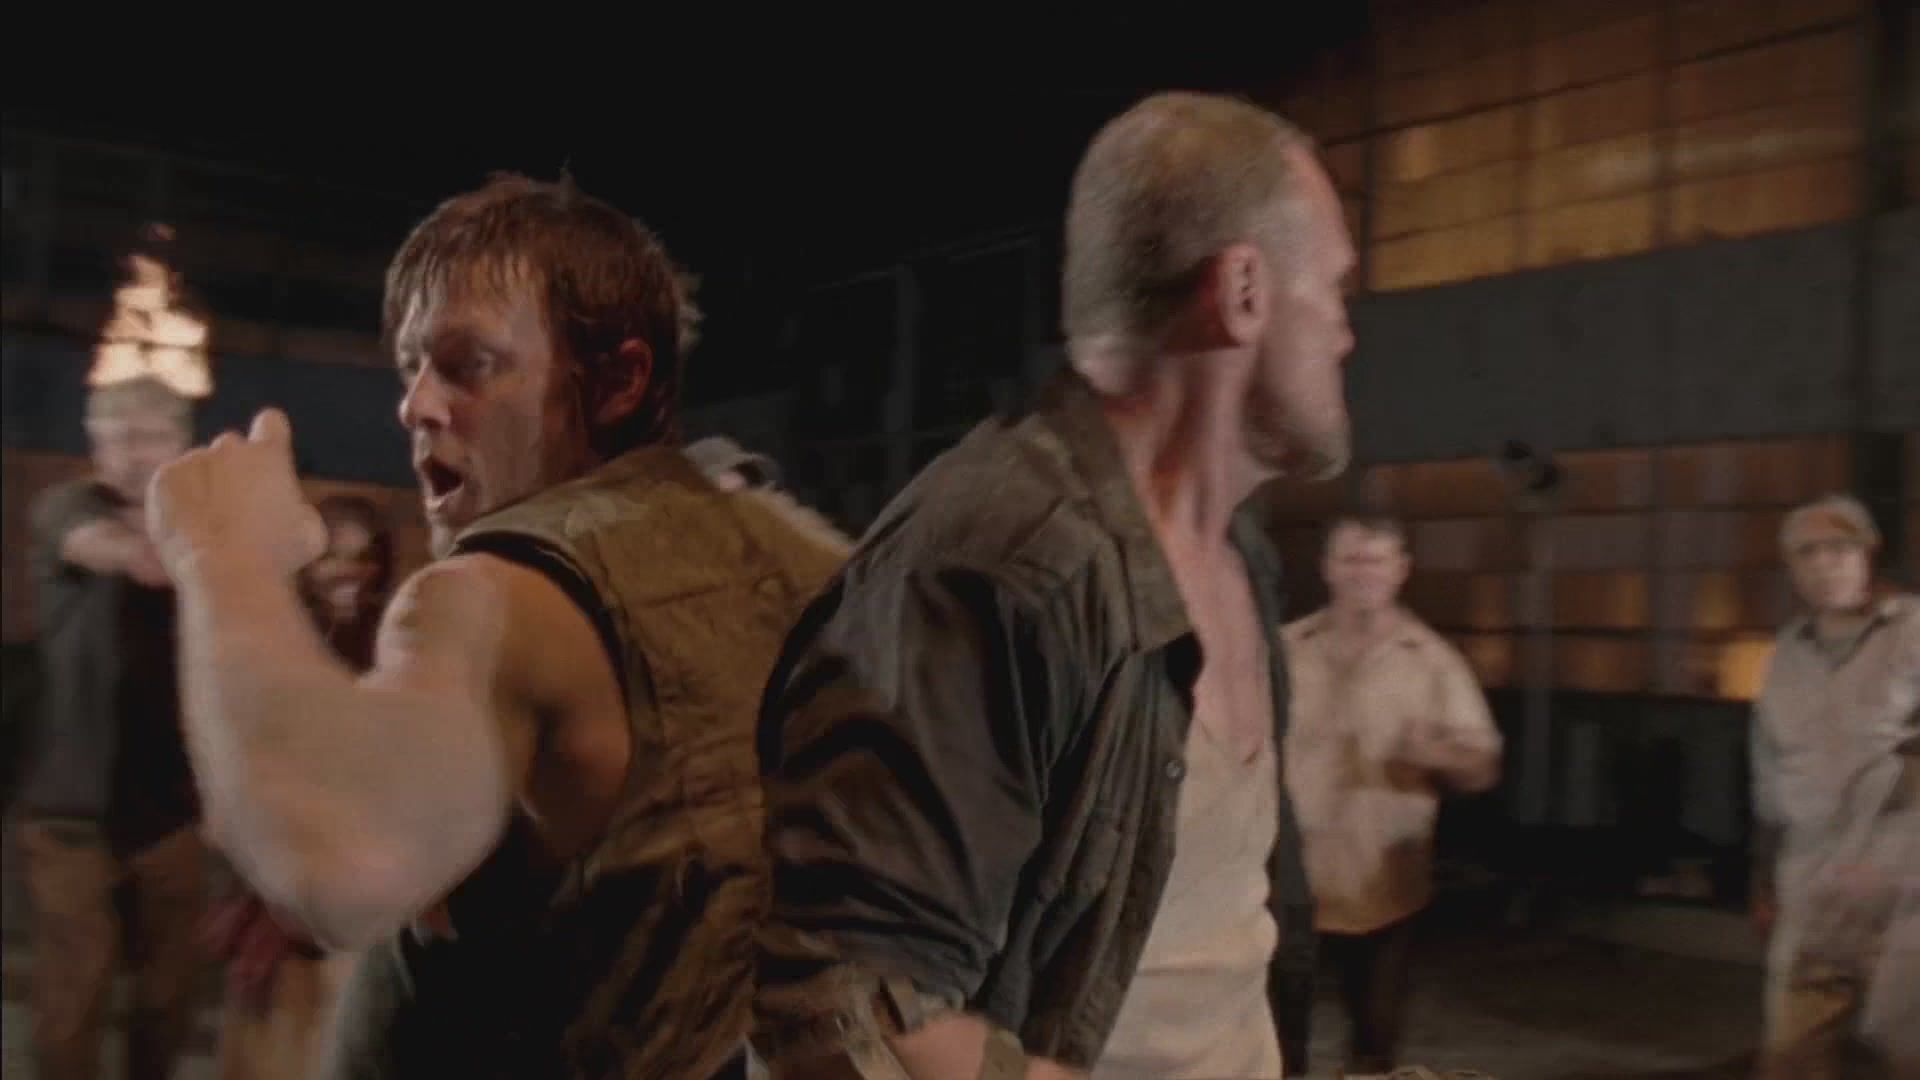 After the invasion of Woodbury by Rick's group, Daryl and Merle are captured by The Governor. Rick decides the fate of Tyreese's group.